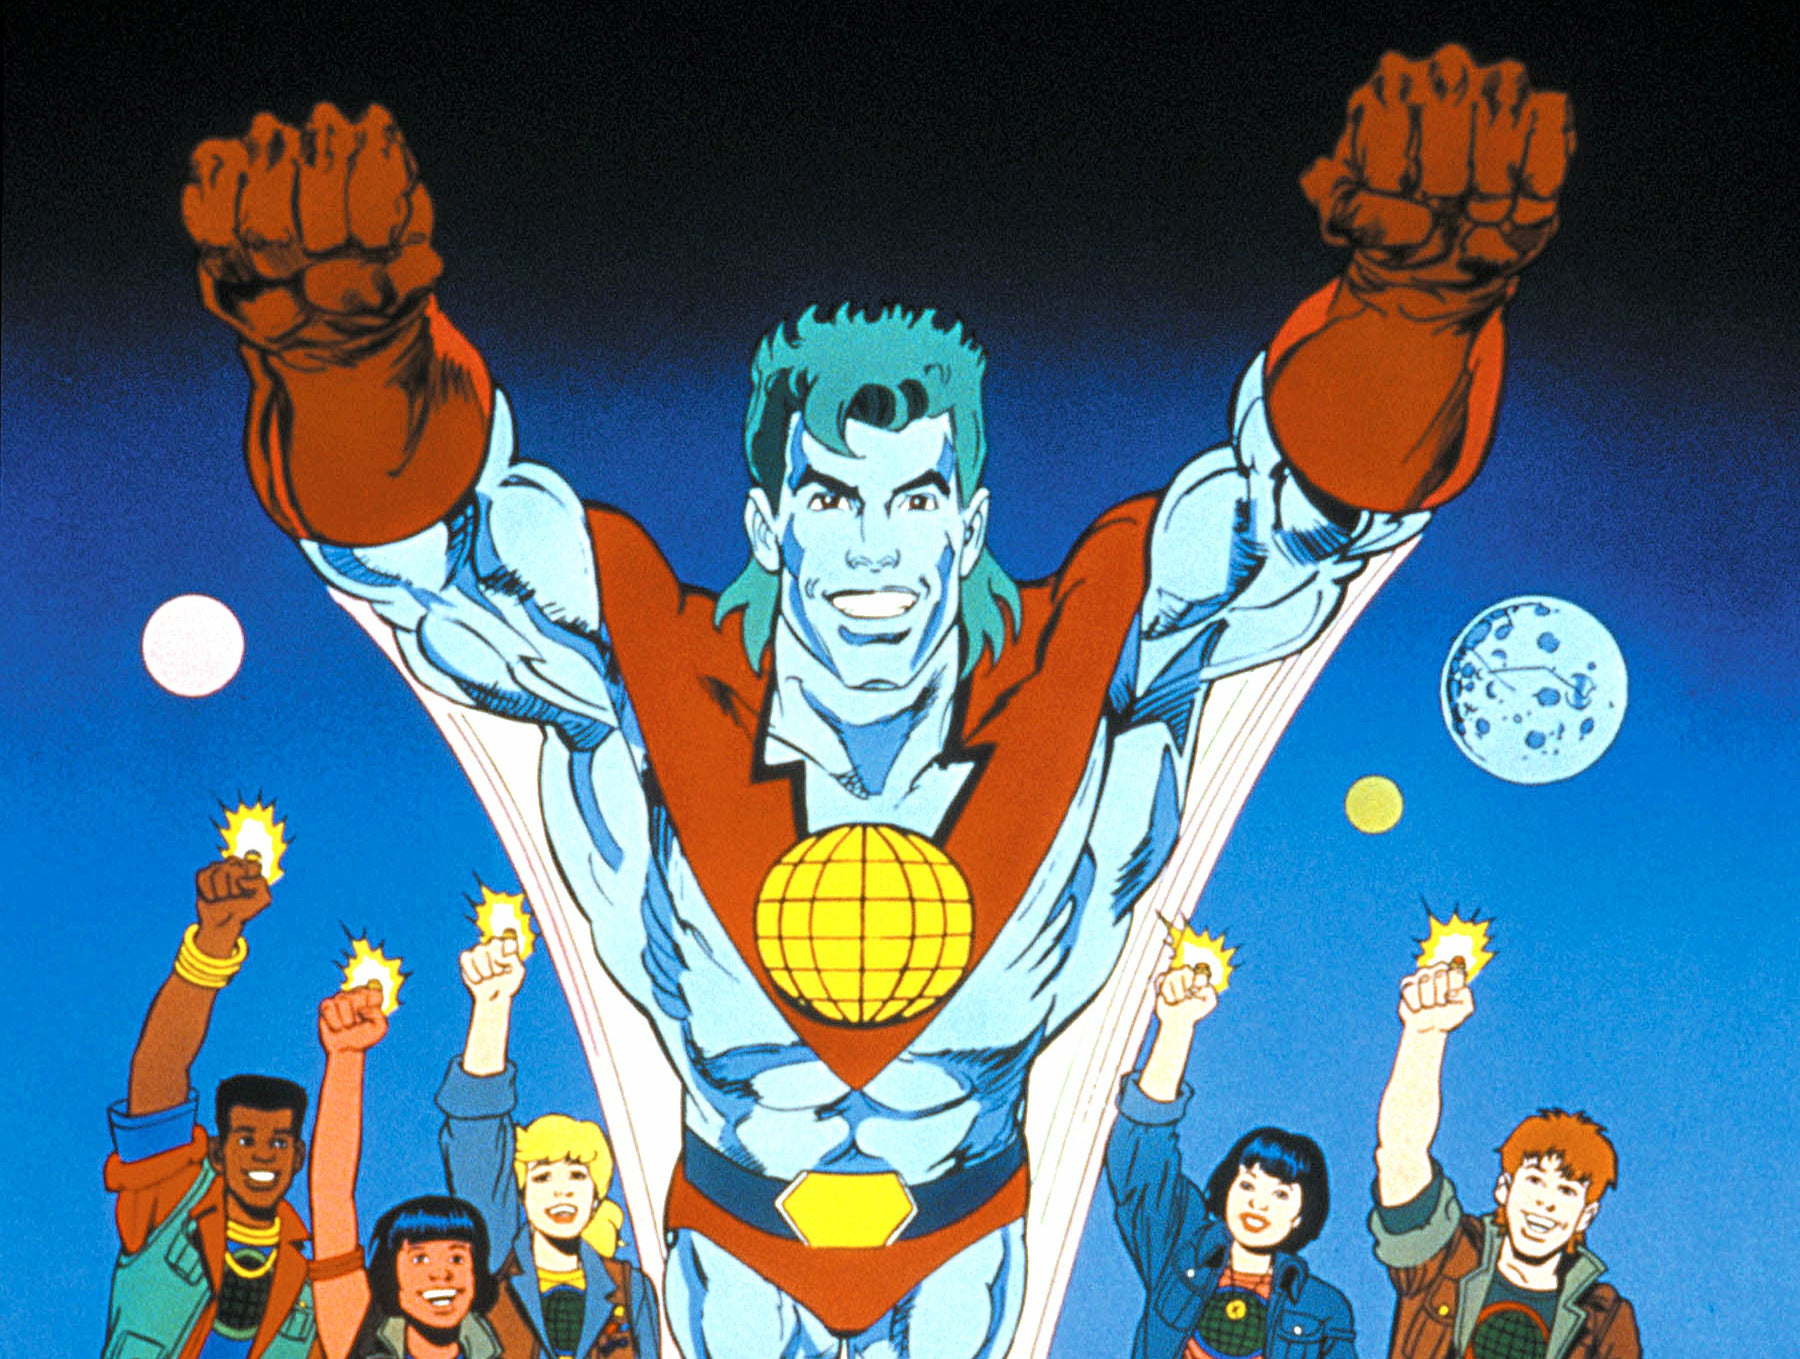 Captain Planet with both fists raised